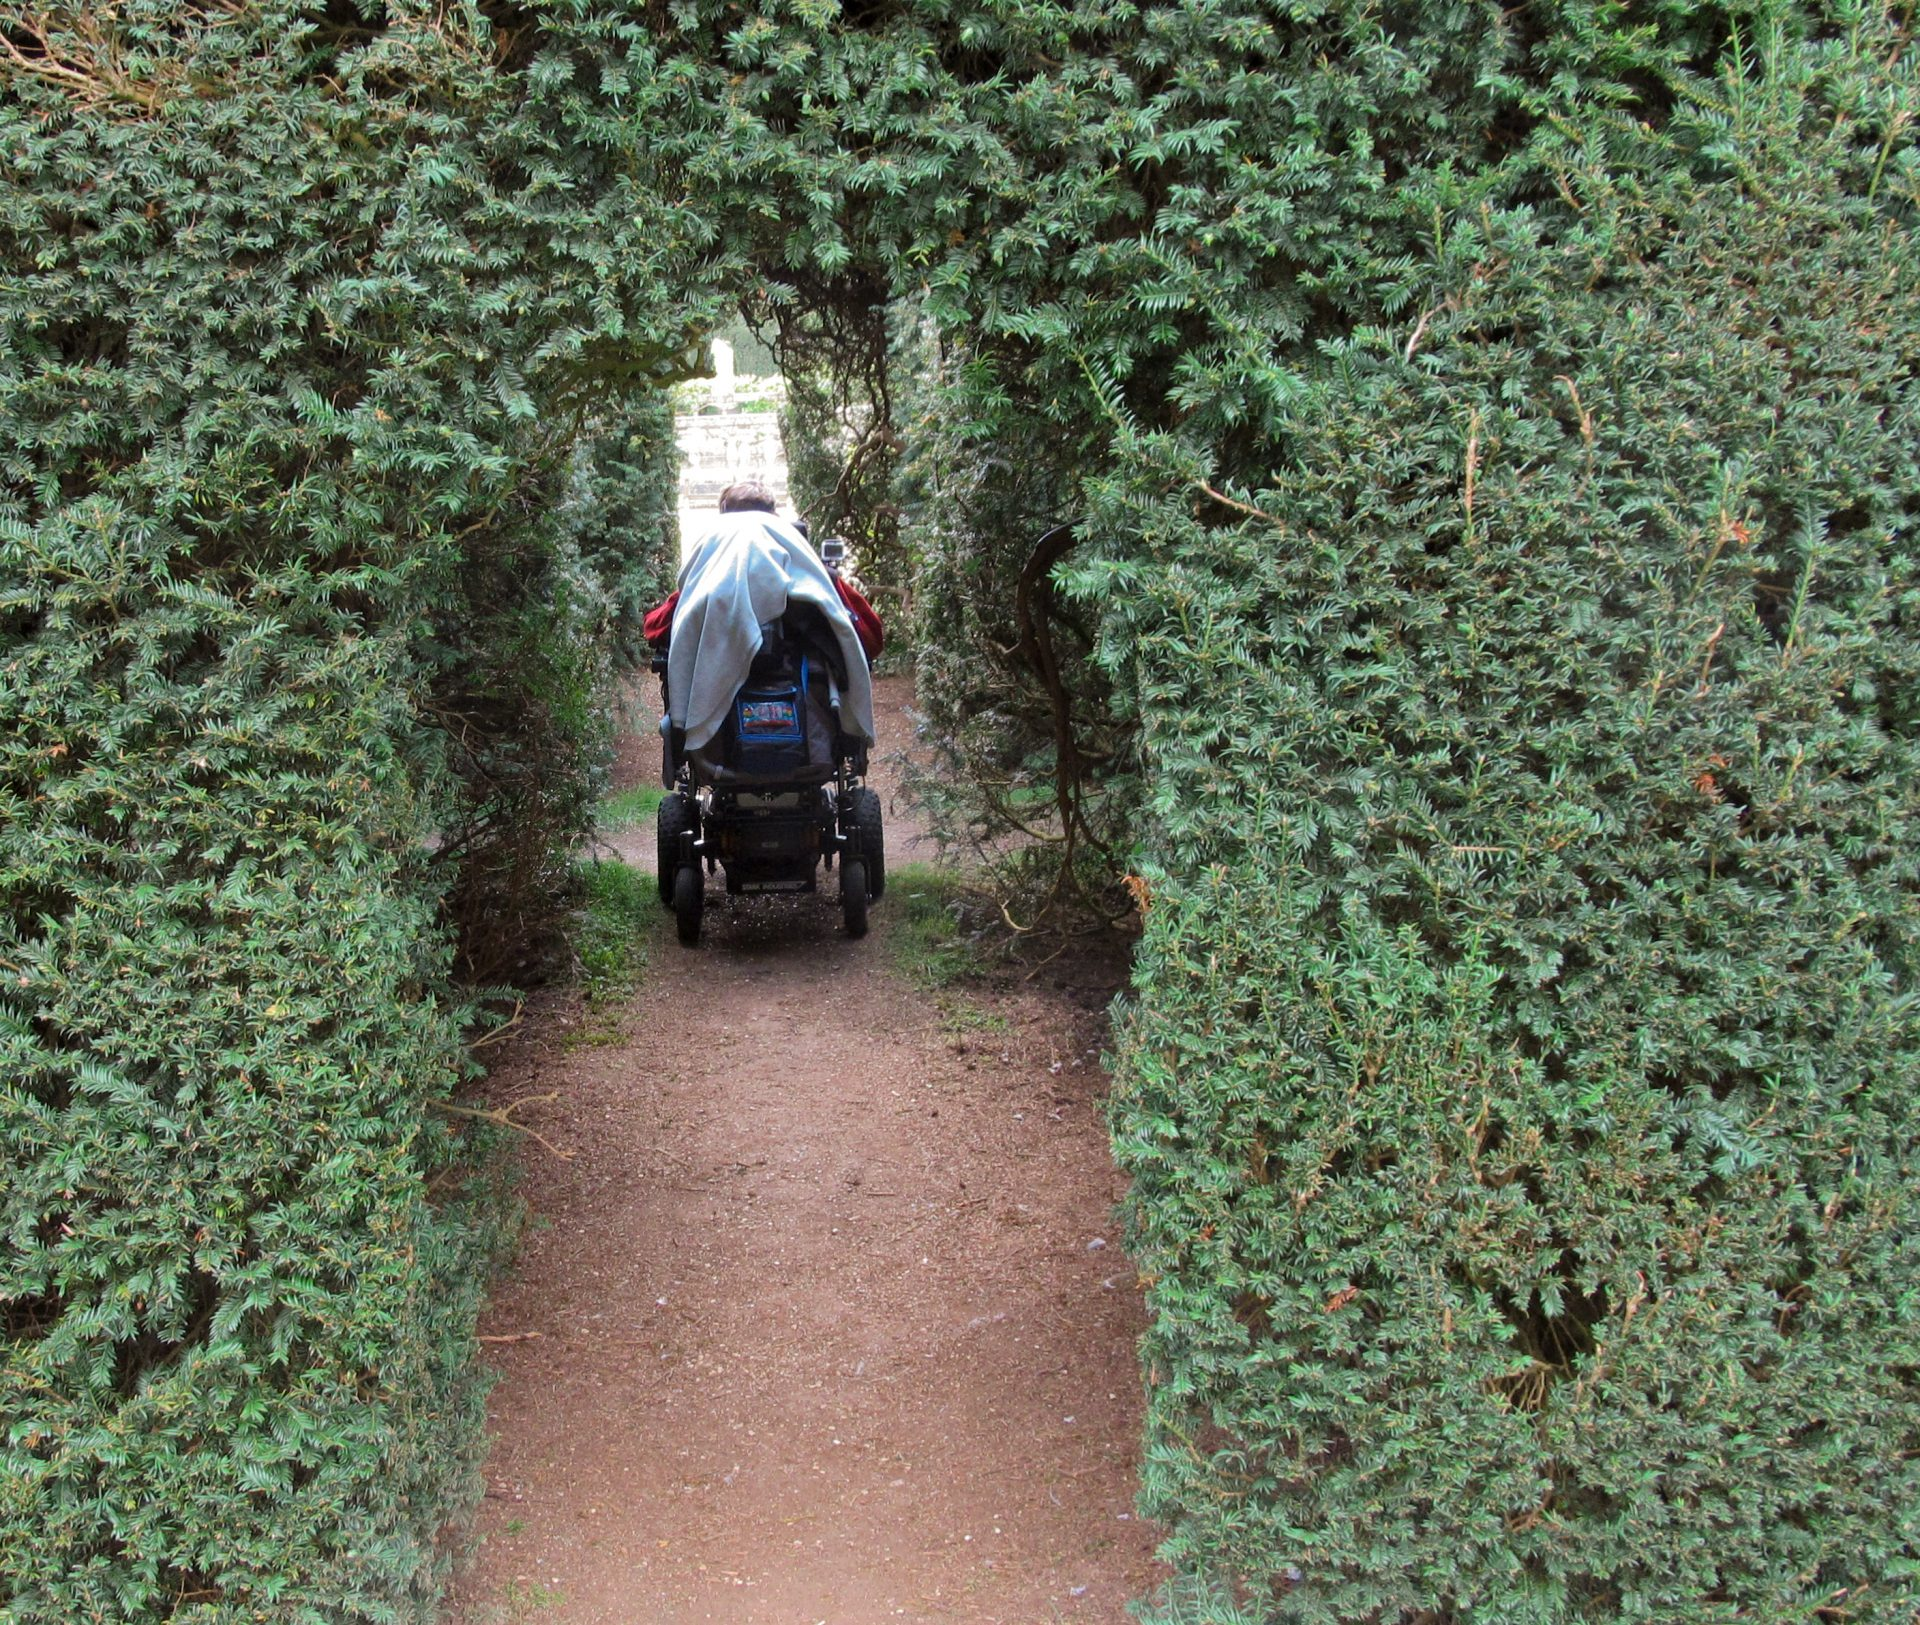 Daniel Baker in his wheelchair passing through archways cut in large hedges Looking Back to April 18th 2014 visit to Sudeley Castle